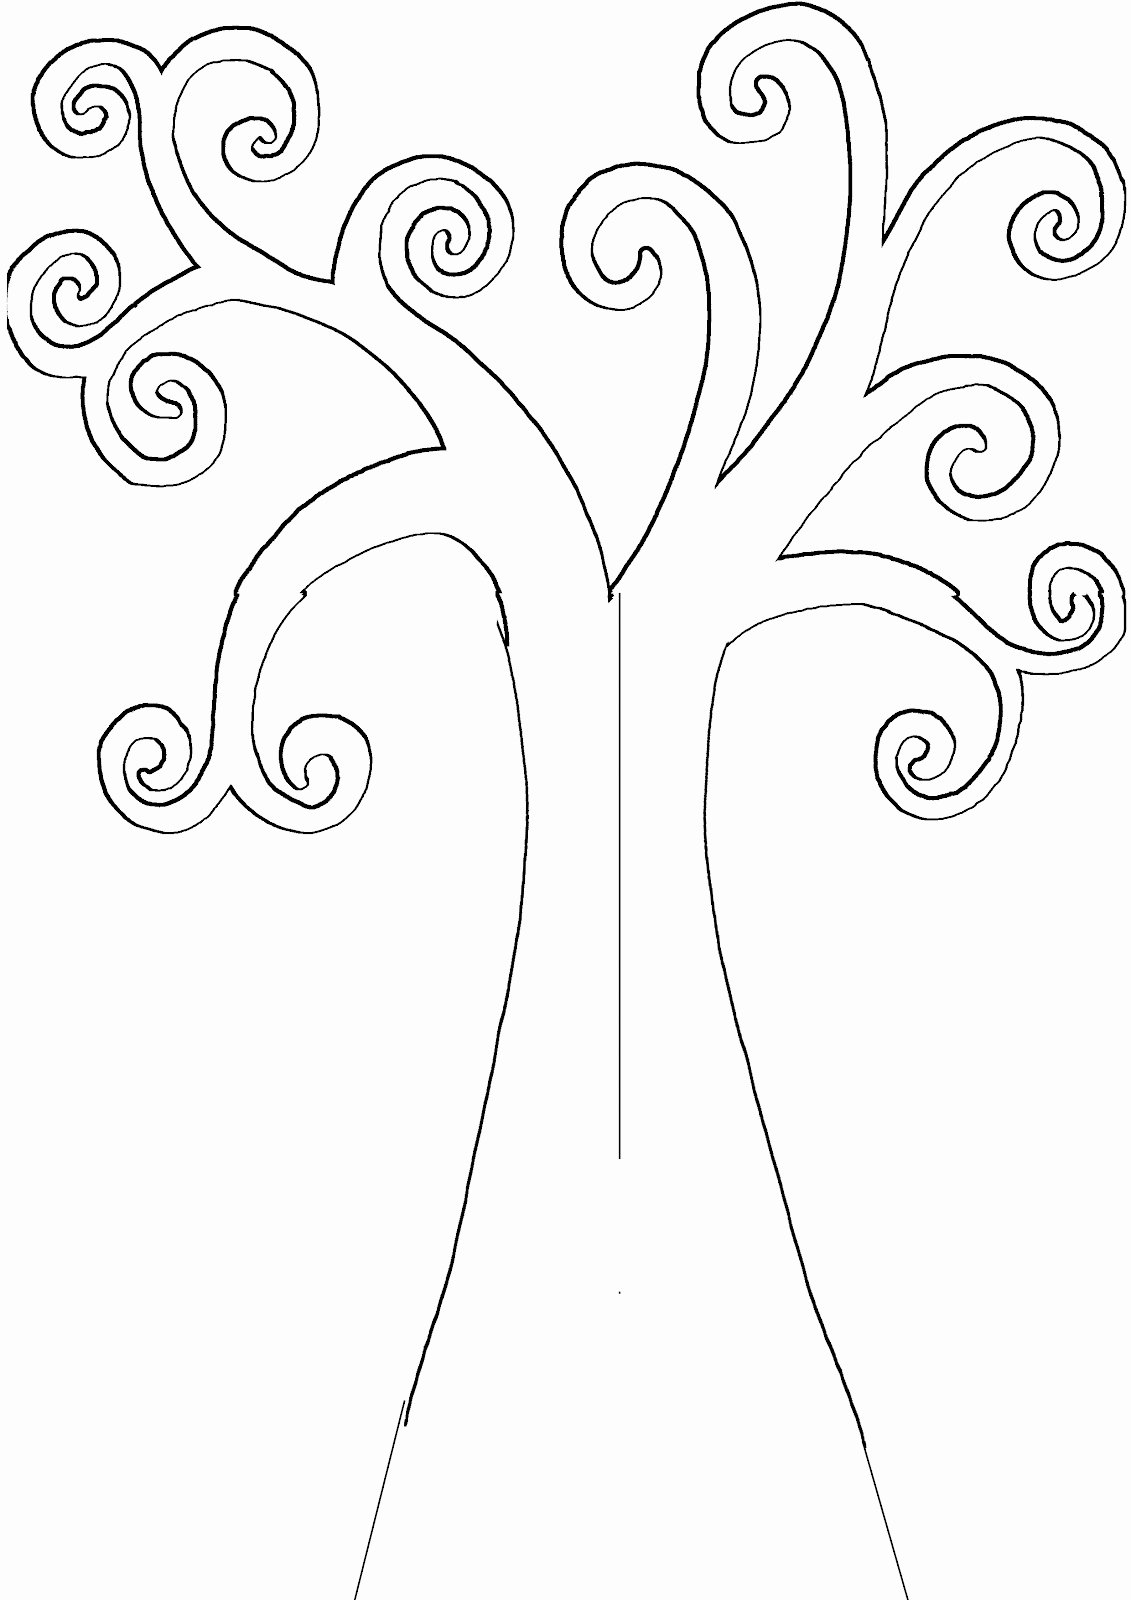 Free Printable Tree Template Beautiful Free Tree Template Download Free Clip Art Free Clip Art